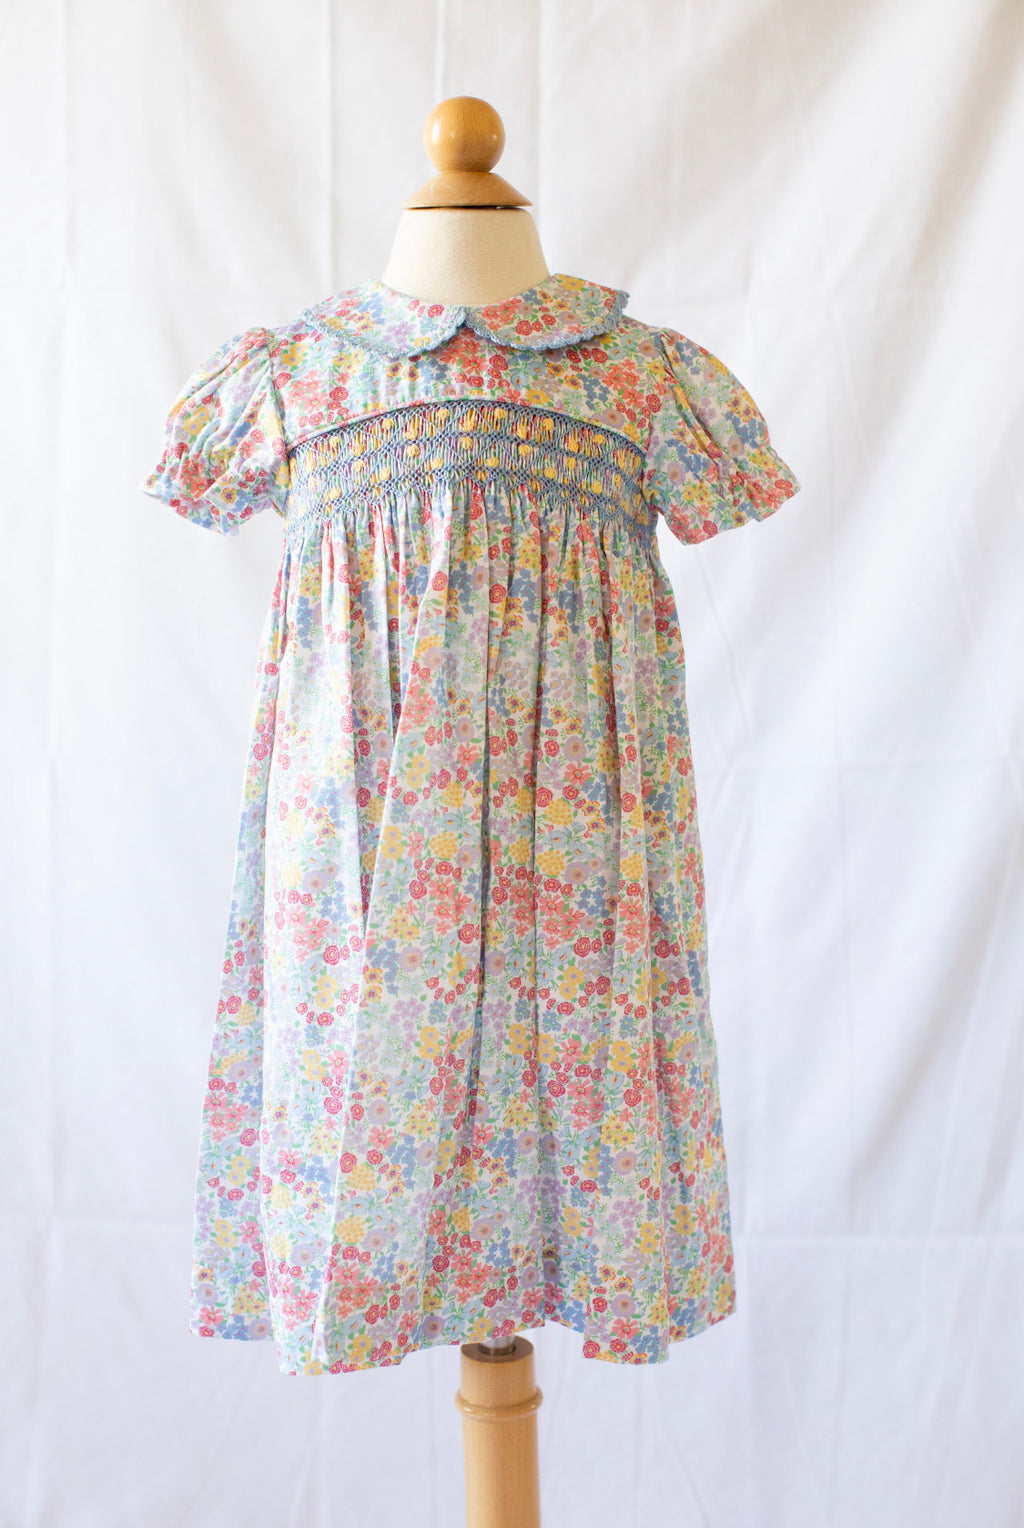 Short Sleeve Smocked Day Dress - Churchill Floral - Born Childrens Boutique